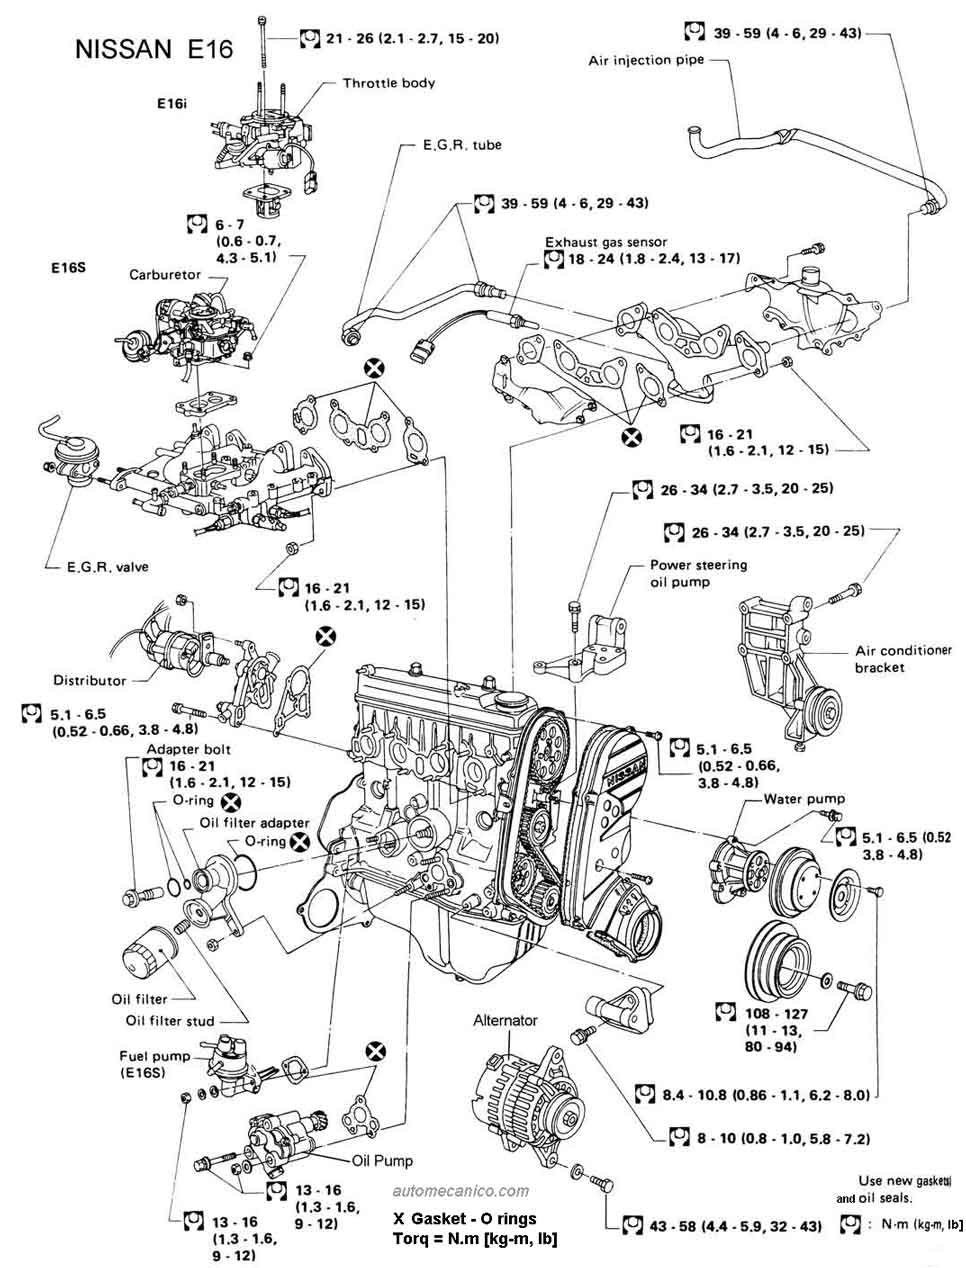 cadillac catera 3 0 engine diagram  cadillac  auto wiring